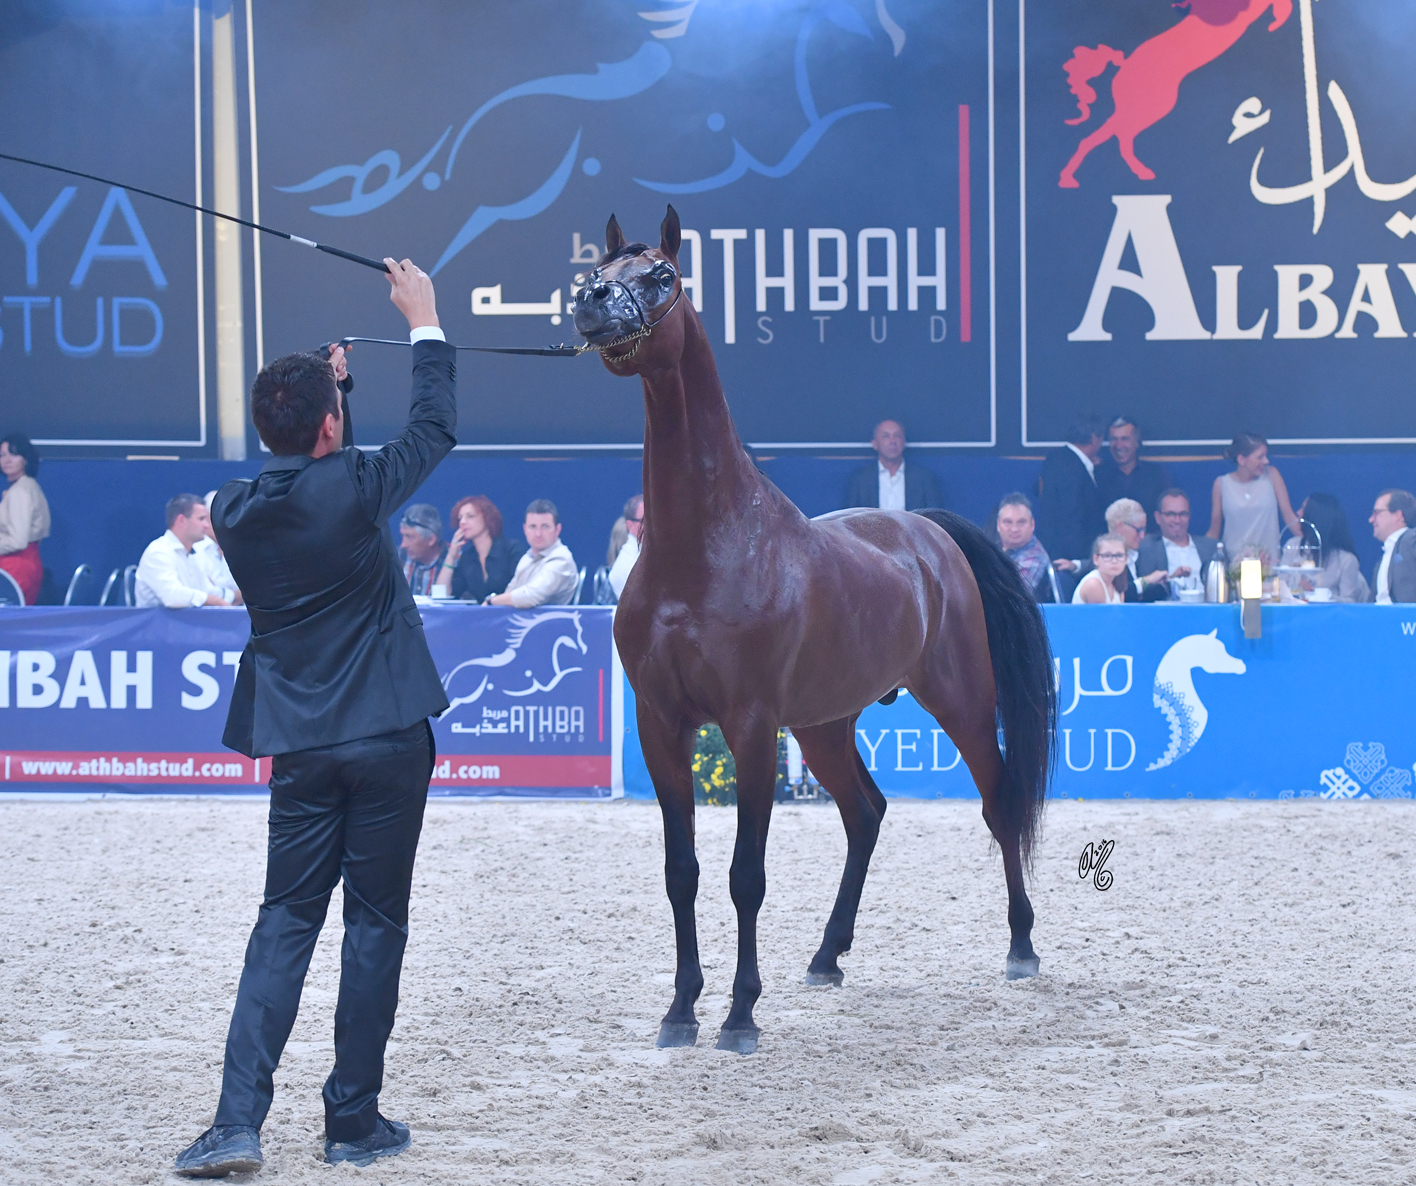 FA El Rasheem being presented by Paolo Capeci as a breeding, donated by the Dubai Arabian Stud, was being auctioned off for charity